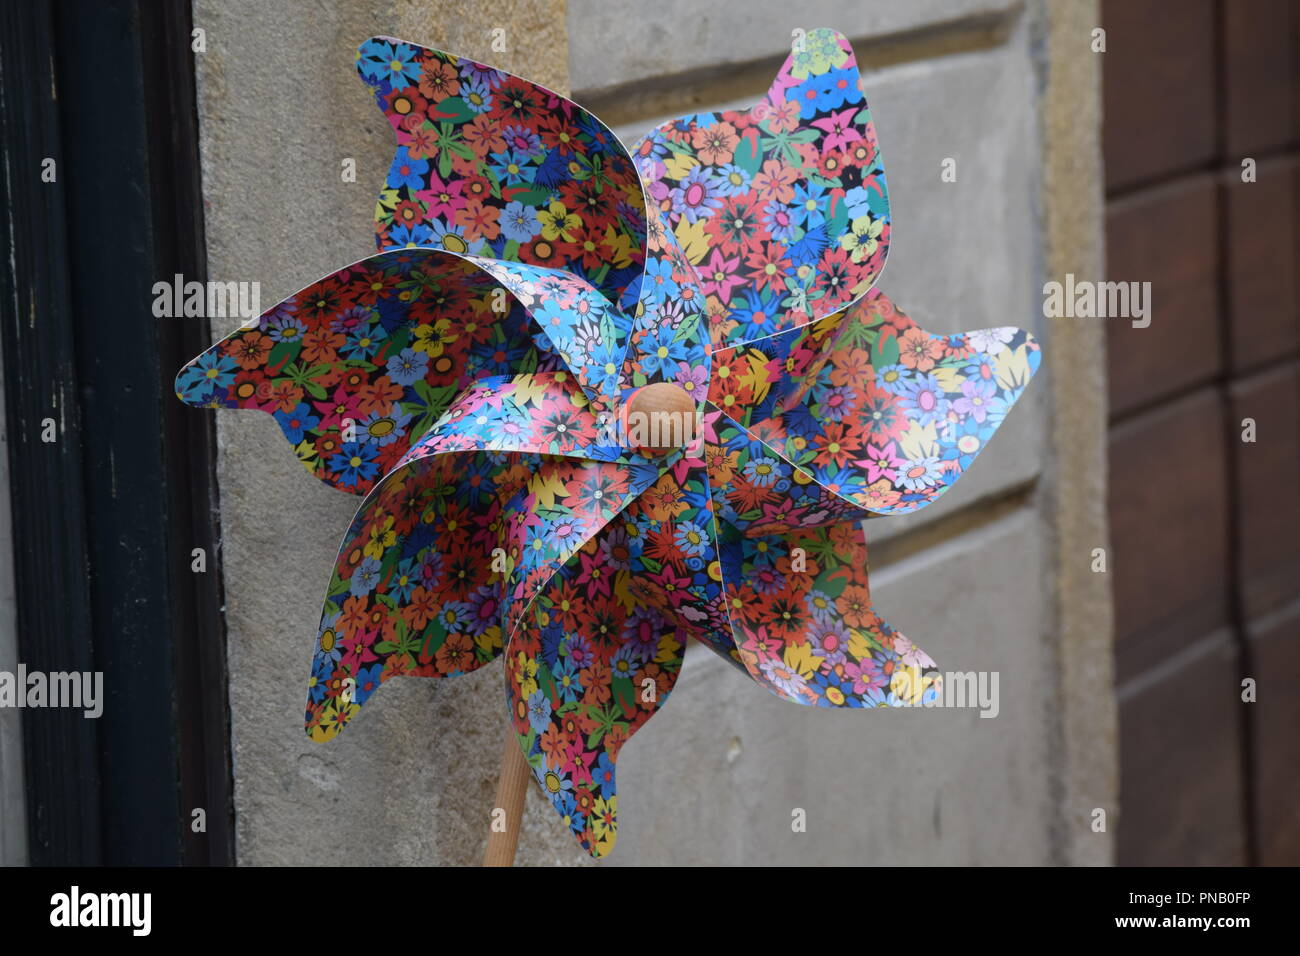 Child's colorful patterned whirligig, windmill - Stock Image